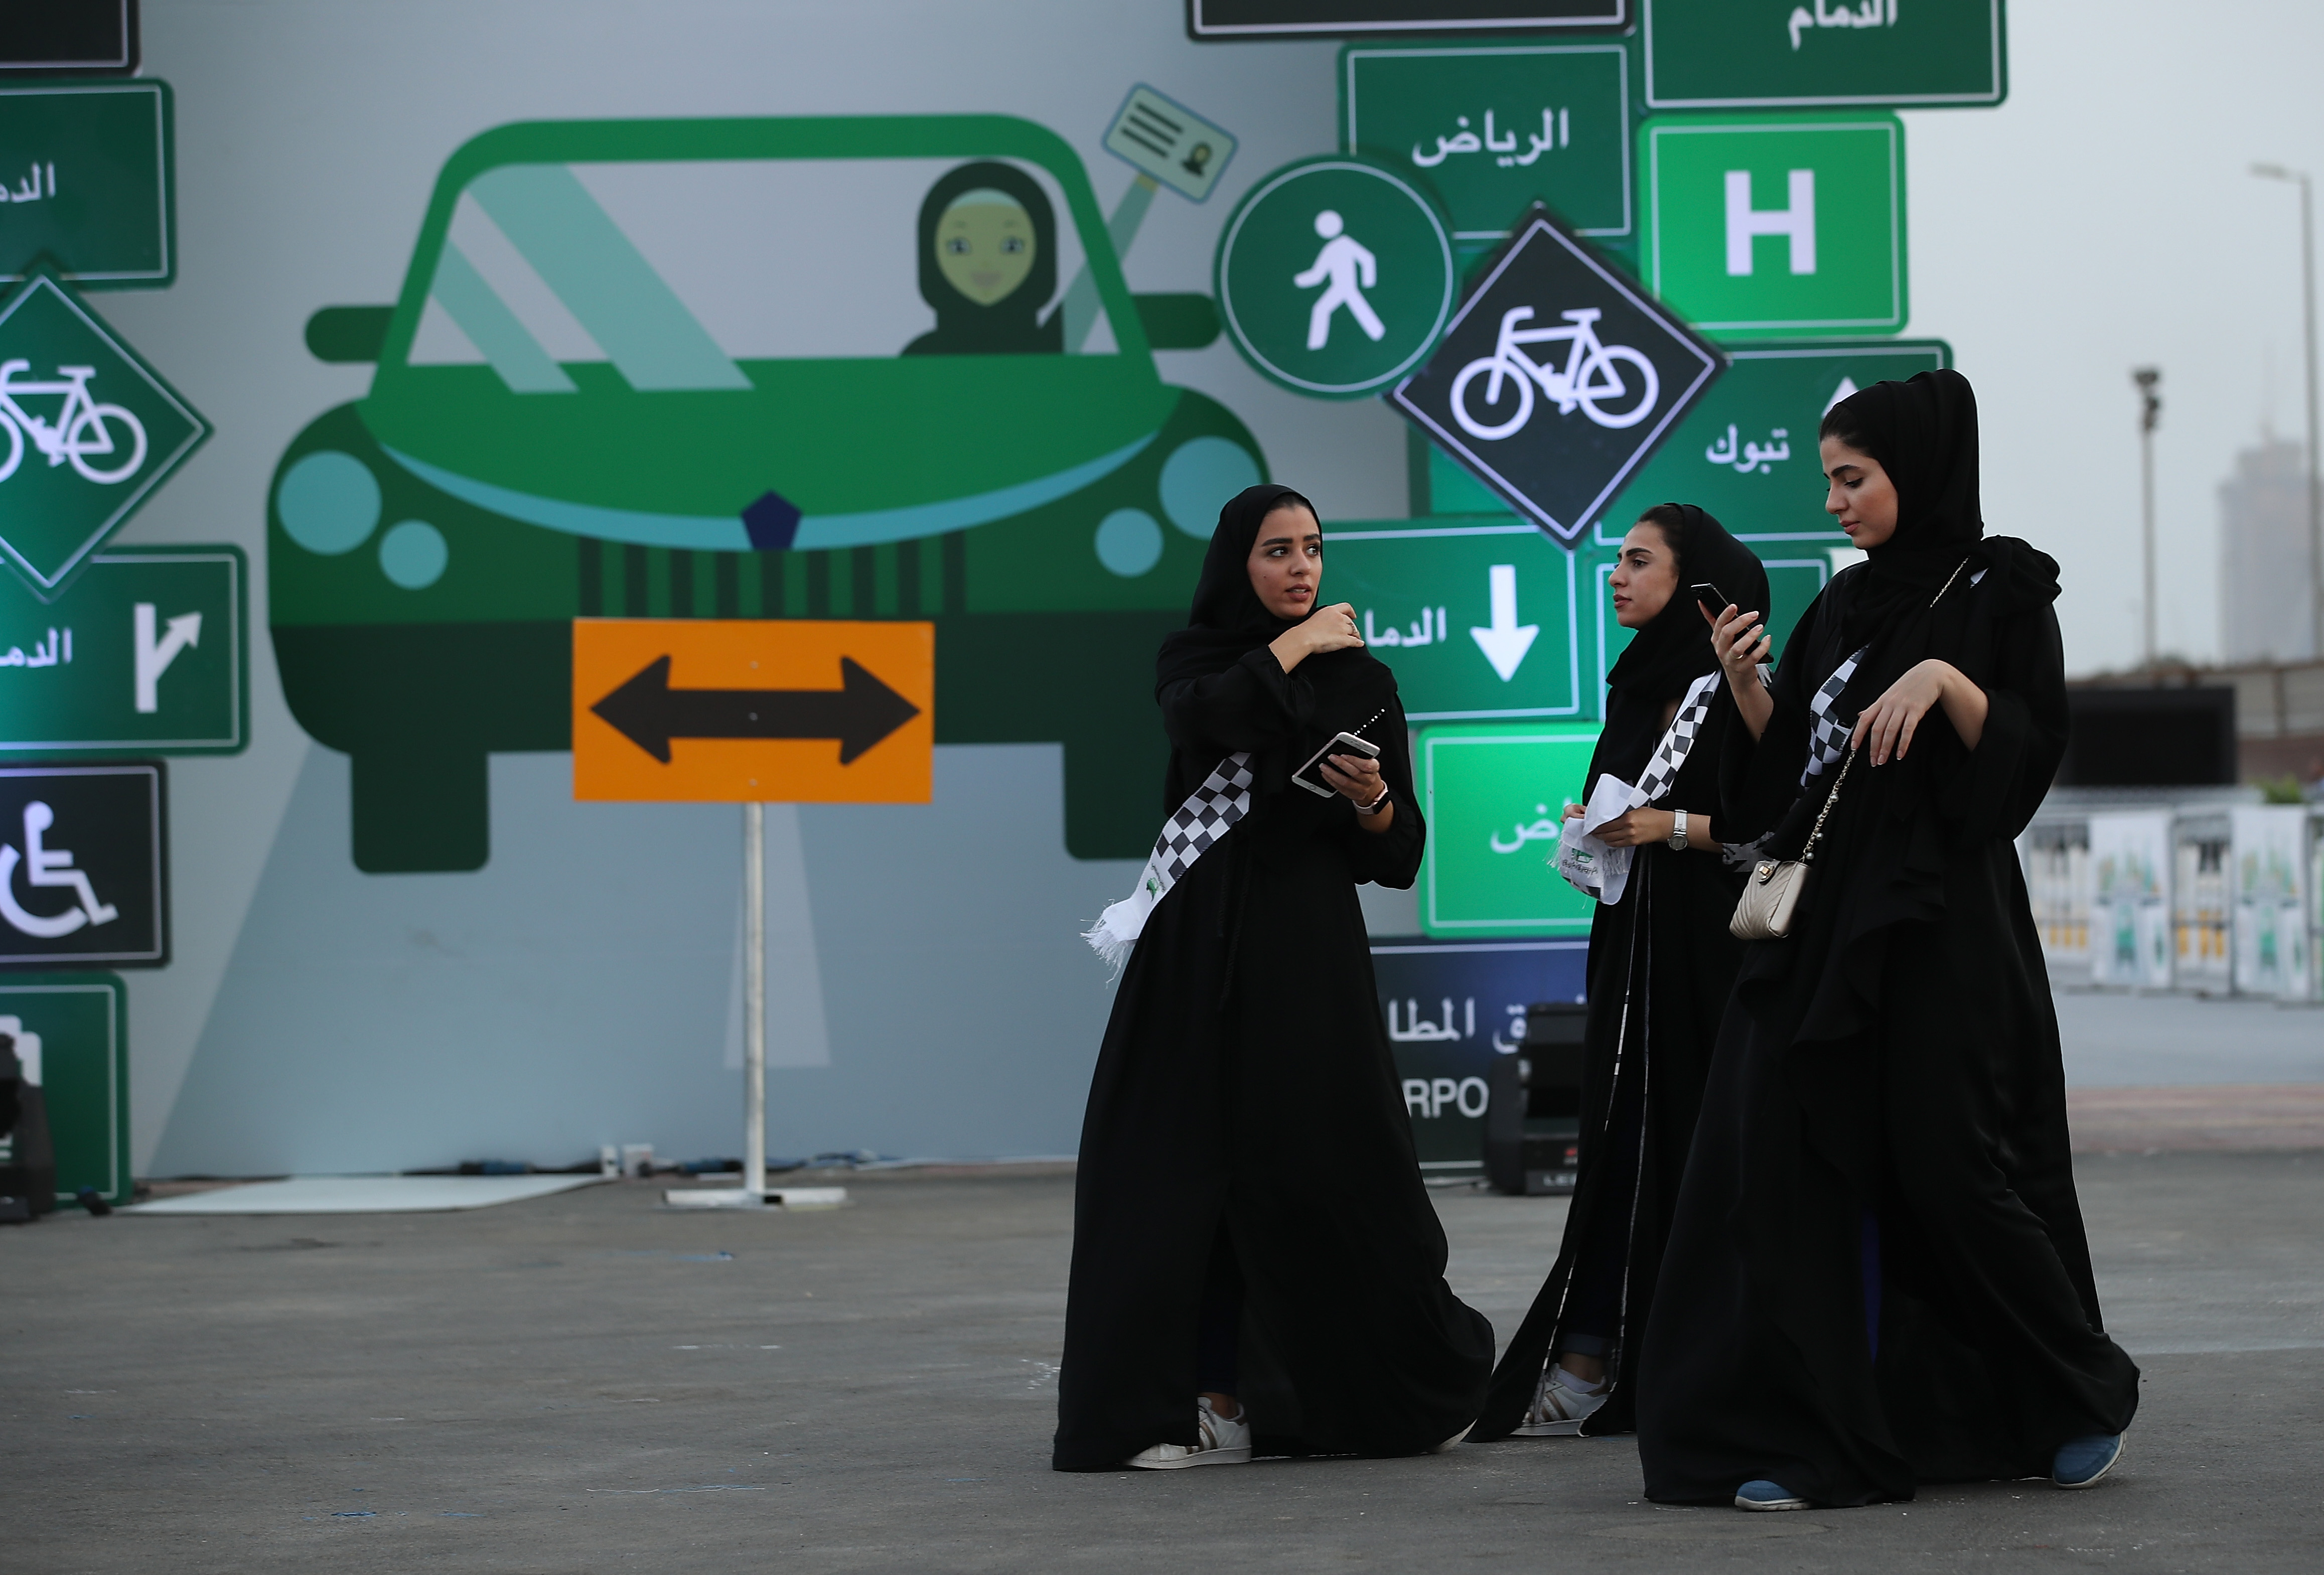 JEDDAH, SAUDI ARABIA - JUNE 21: Young women wearing the traditional abaya walk past a sign as they help to organize an outdoor educational driving event for women on June 21, 2018 in Jeddah, Saudi Arabia. Saudi Arabia is scheduled to lift its ban on women driving, which has been in place since 1957, on June 24. The Saudi government, under Crown Prince Mohammad Bin Salman, is phasing in an ongoing series of reforms to both diversify the Saudi economy and to liberalize its society. The reforms also seek to empower women by restoring them basic legal rights, allowing them increasing independence and encouraging their participation in the workforce. Saudi Arabia is among the most conservative countries in the world and women have traditionally had much fewer rights than men. (Photo by Sean Gallup/Getty Images)